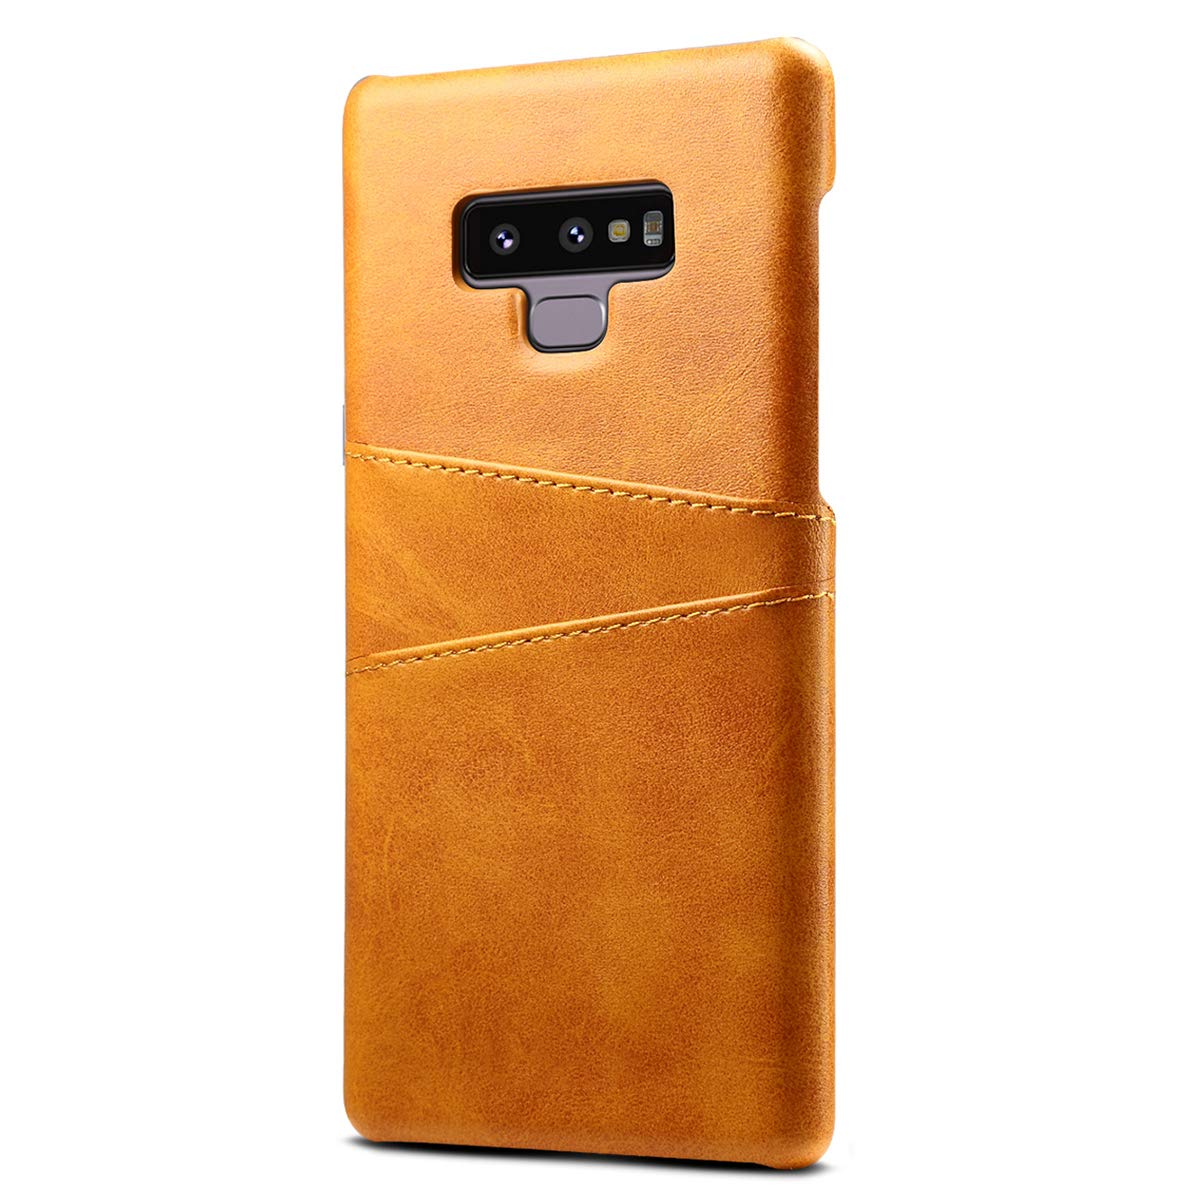 Galaxy Note 9 Leather Wallet Phone Case Back Slim Cover with Card Holder, Khaki FLY HAWK KDS07161-KaQiSe-Note9@#CAGDF